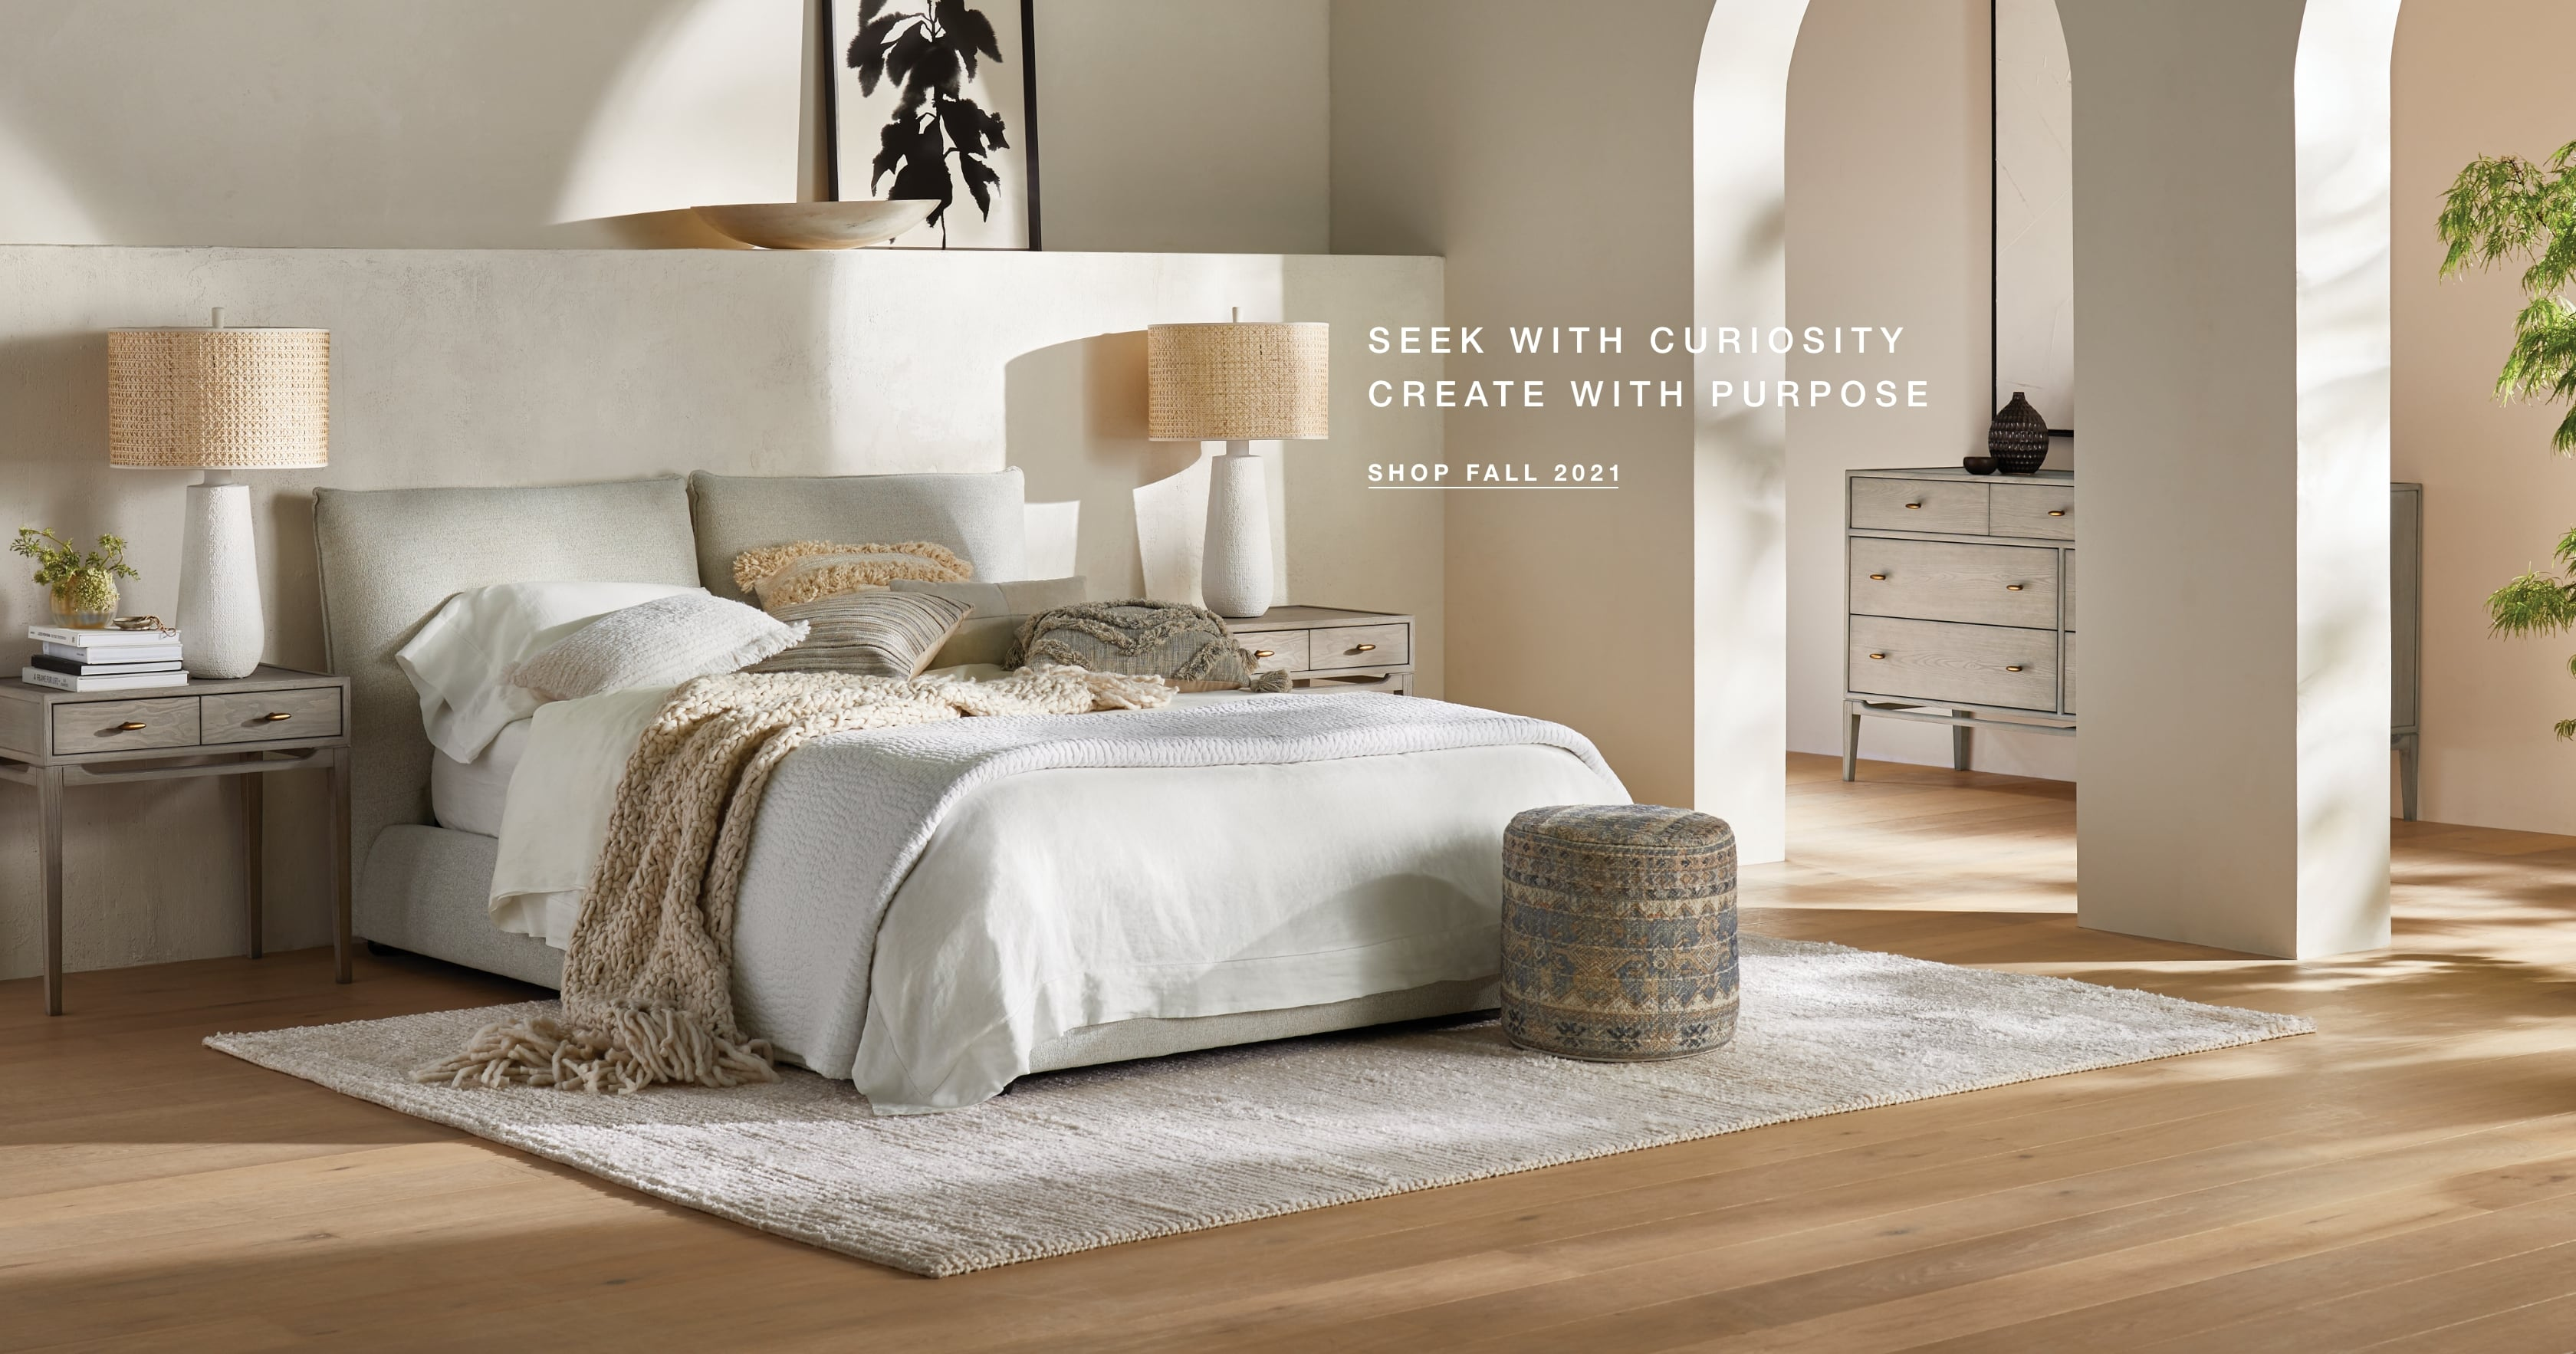 Shop the Arhaus Fall 2021 Collection New Arrivals